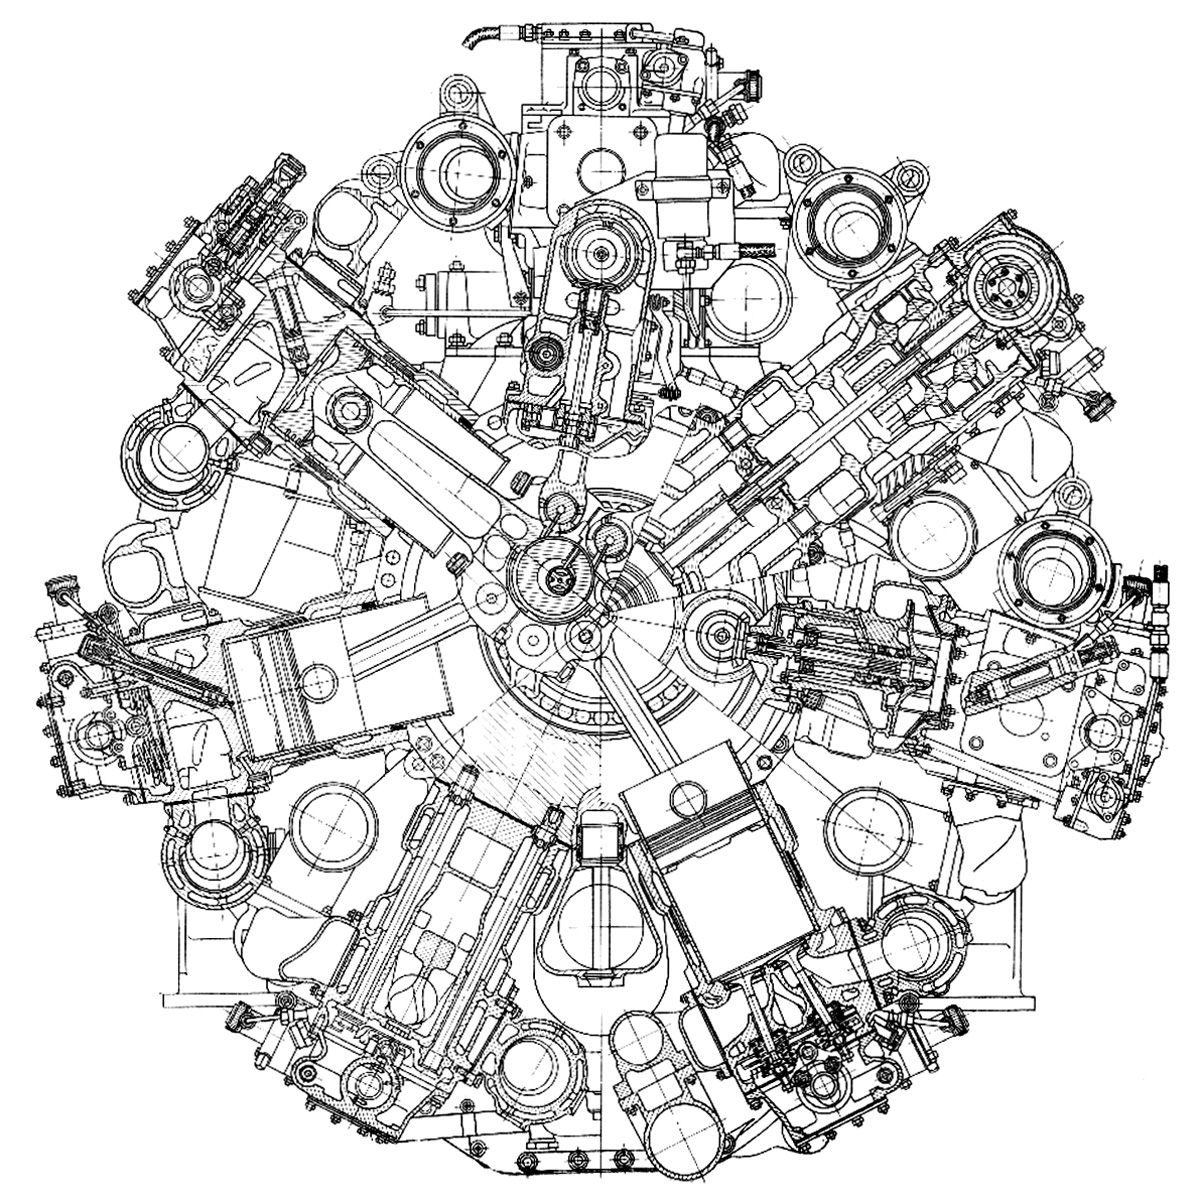 The Best Free Engine Drawing Images Download From Free Drawings Of Engine At Getdrawings